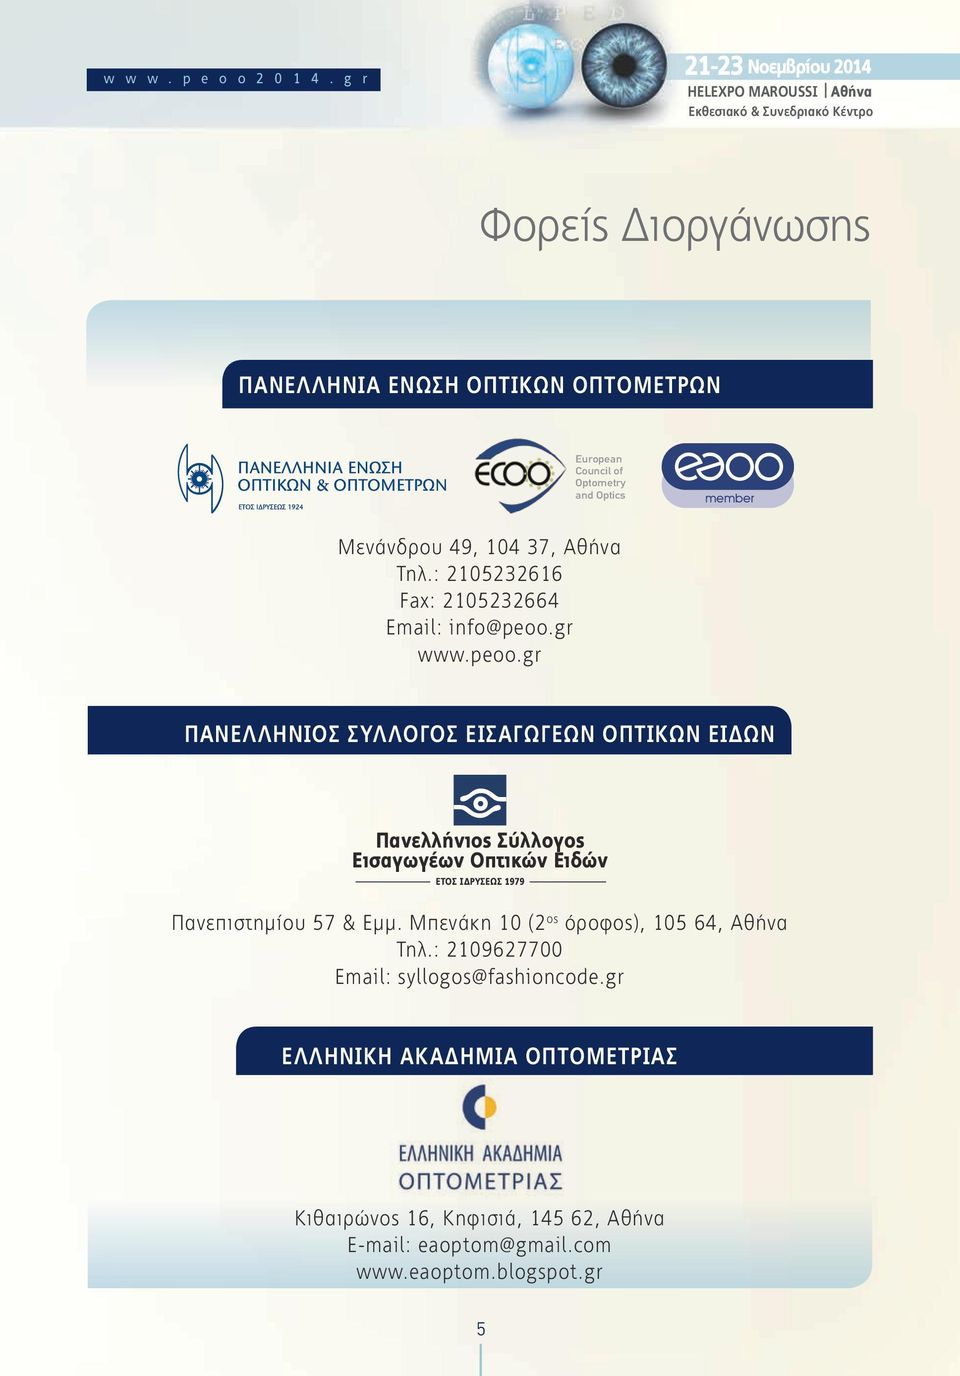 Optometry and Optics Μενάνδρου 49, 104 37, Αθήνα Τηλ.: 2105232616 Fax: 2105232664 Email: info@peoo.